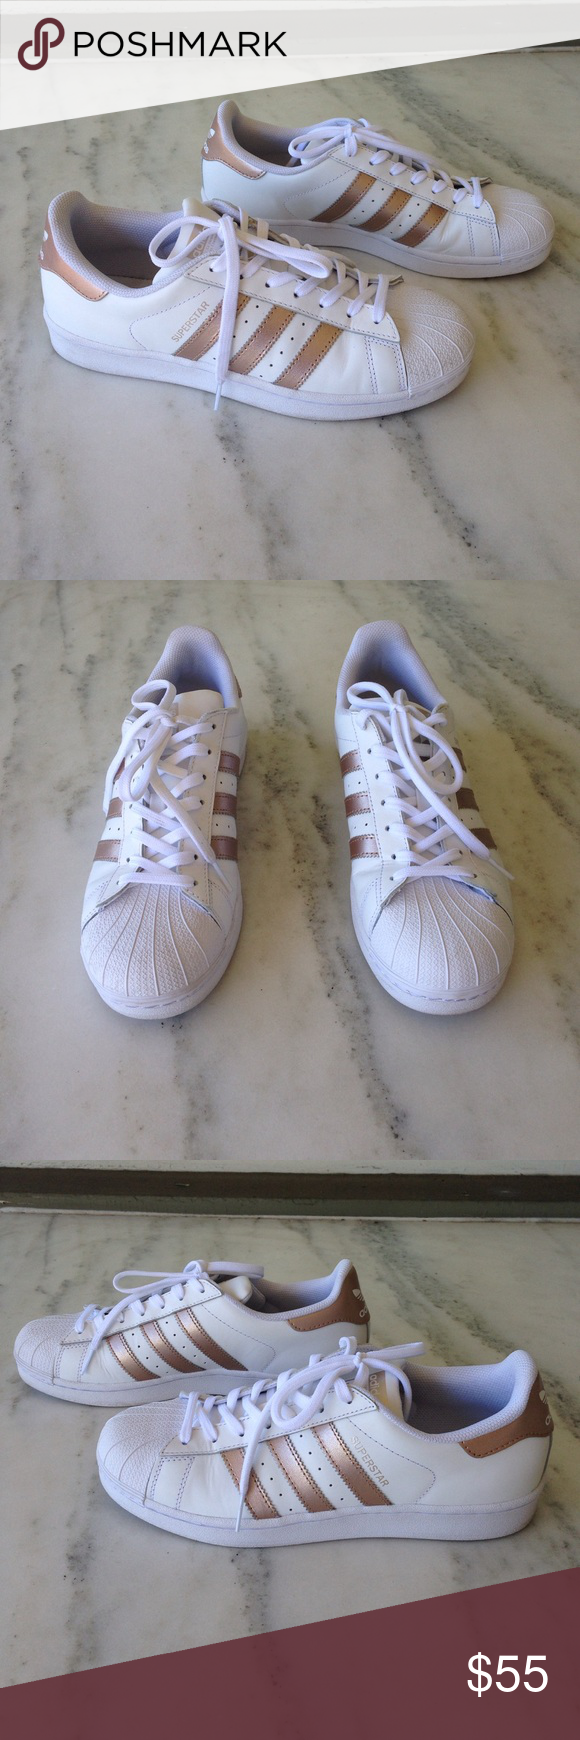 Rose D'oro Adidas Superstar Strisce Superstar, Scarpe E La